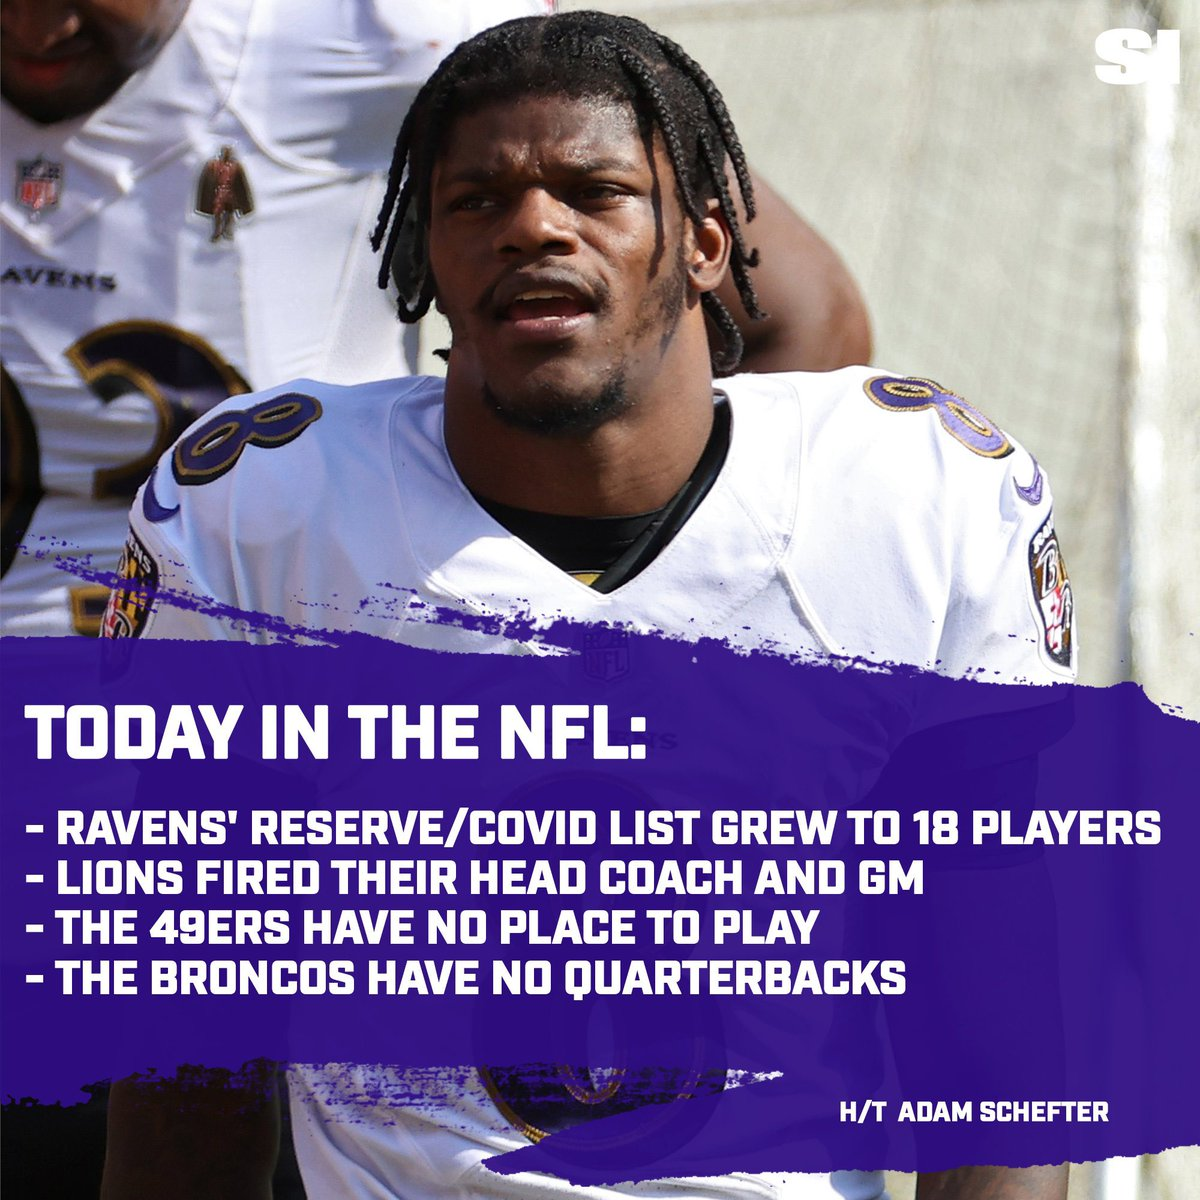 To recap: it's been a wild Saturday as it pertains to the #NFL   #RavensFlock #HereWeGo #OnePride #FTTB #BroncosCountry